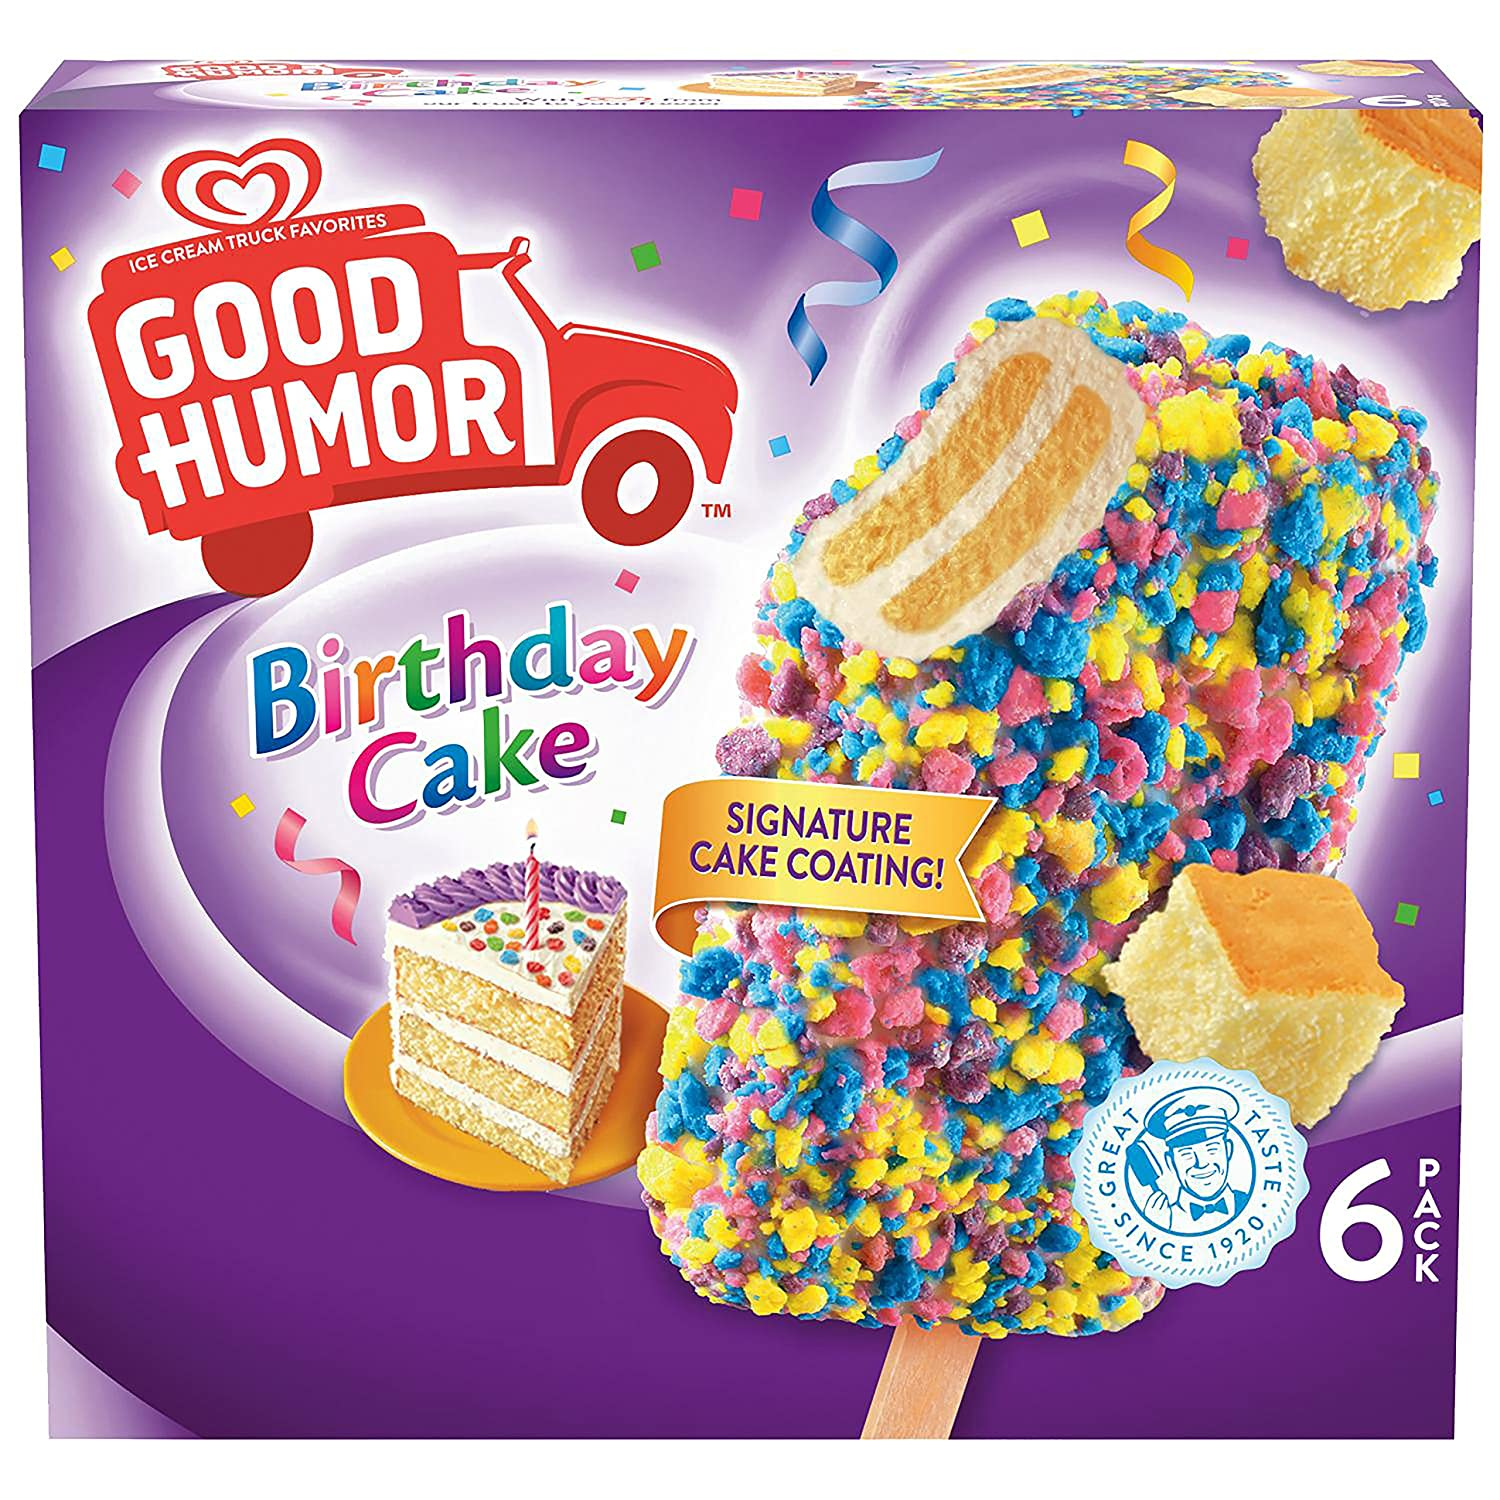 Good Humor Ice Cream Frozen Desserts Bar Birthday Cake 6 Count